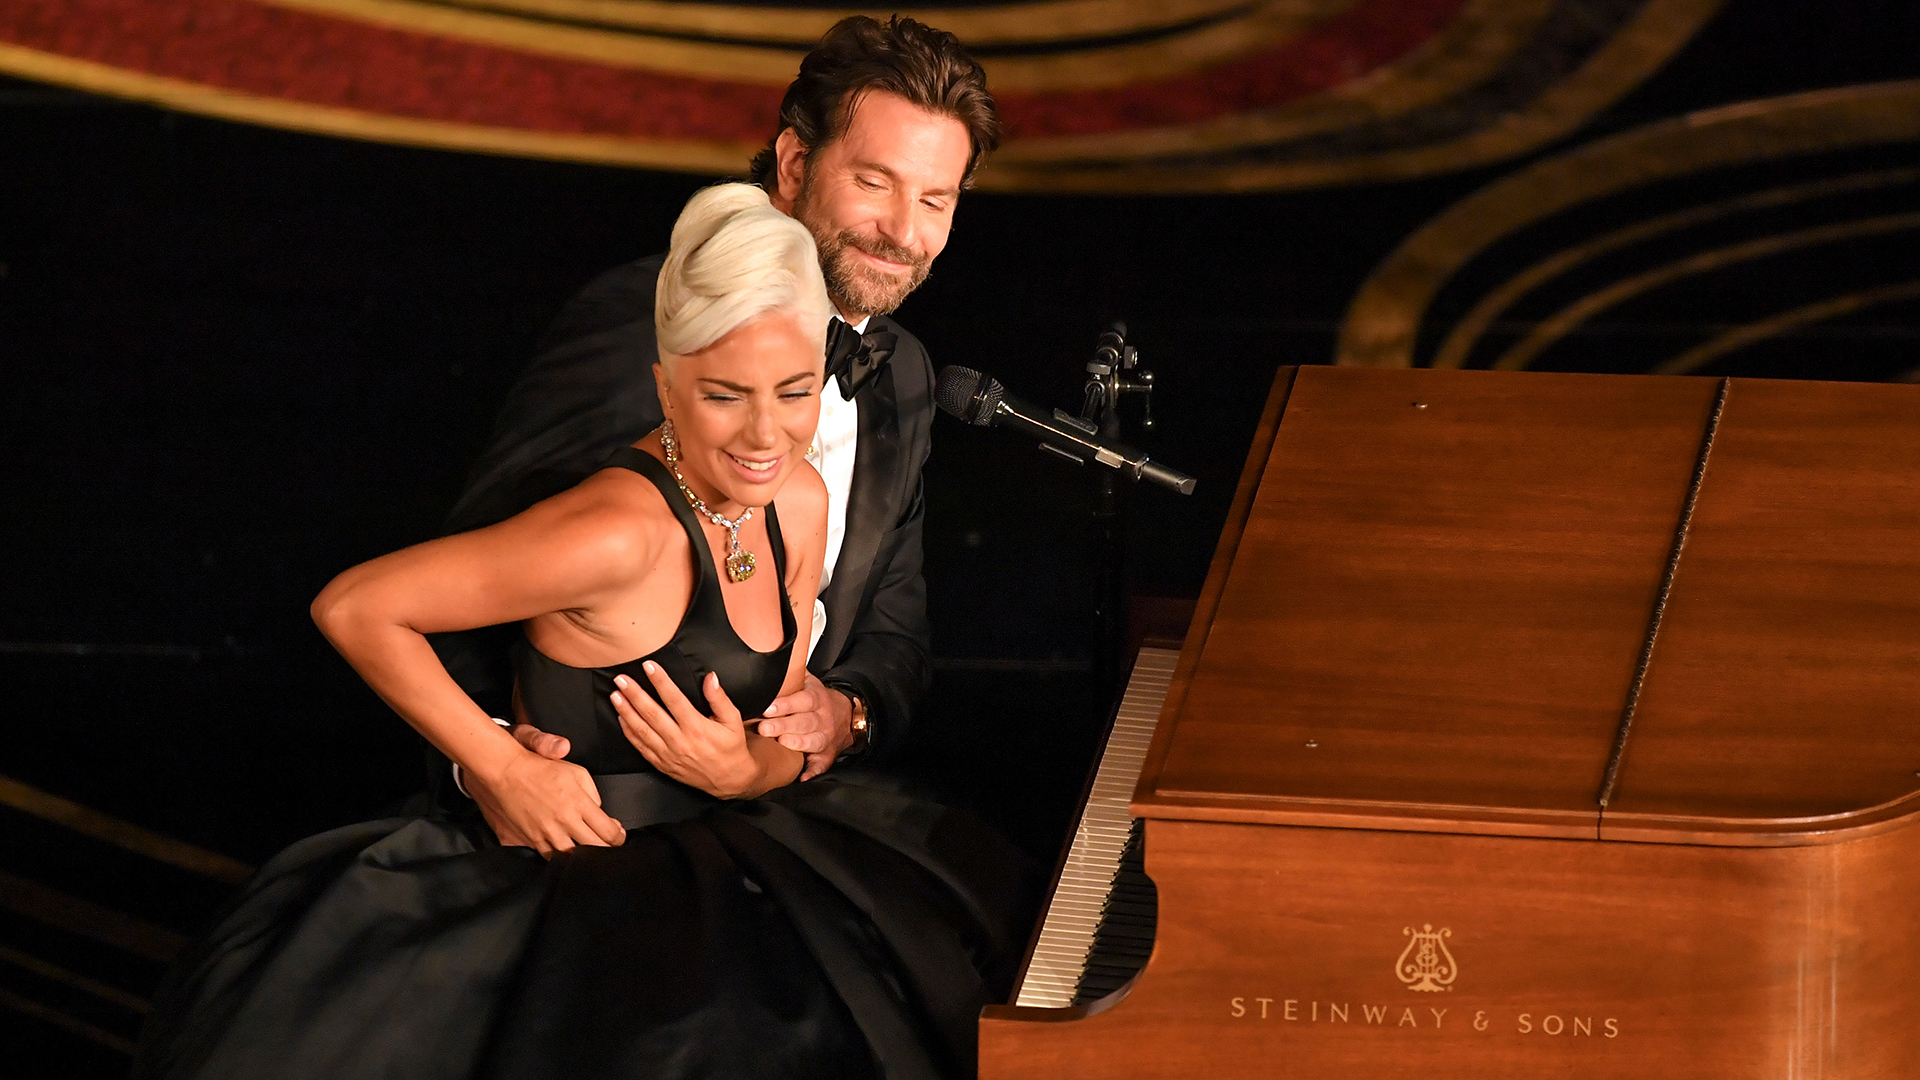 Epic Live Performances and Wins at the Oscars 2019